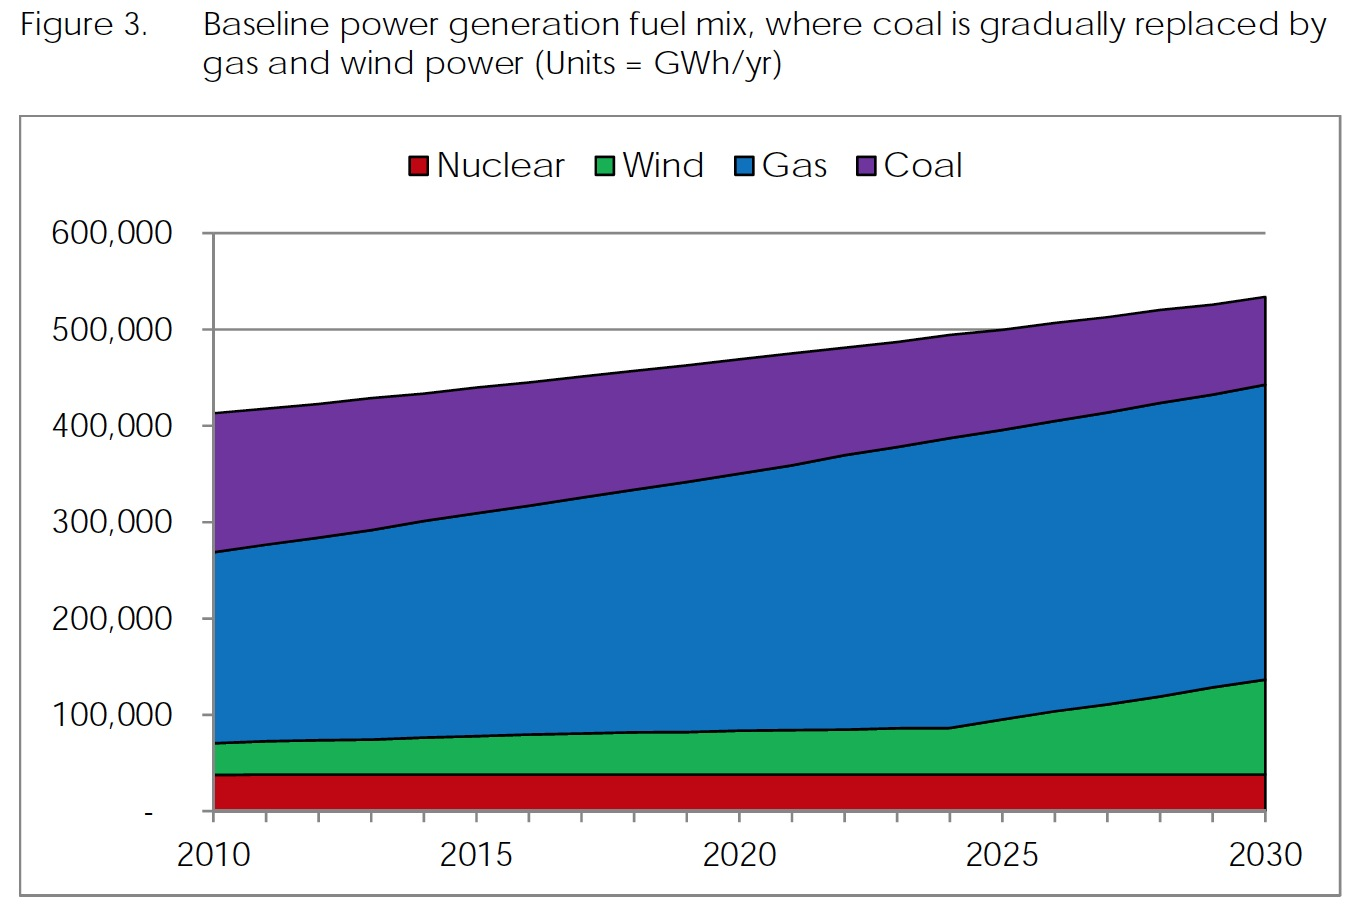 Figure 3. Baseline power generation fuel mix, where coal is gradually replaced by gas and wind power (Units = GWh/yr)